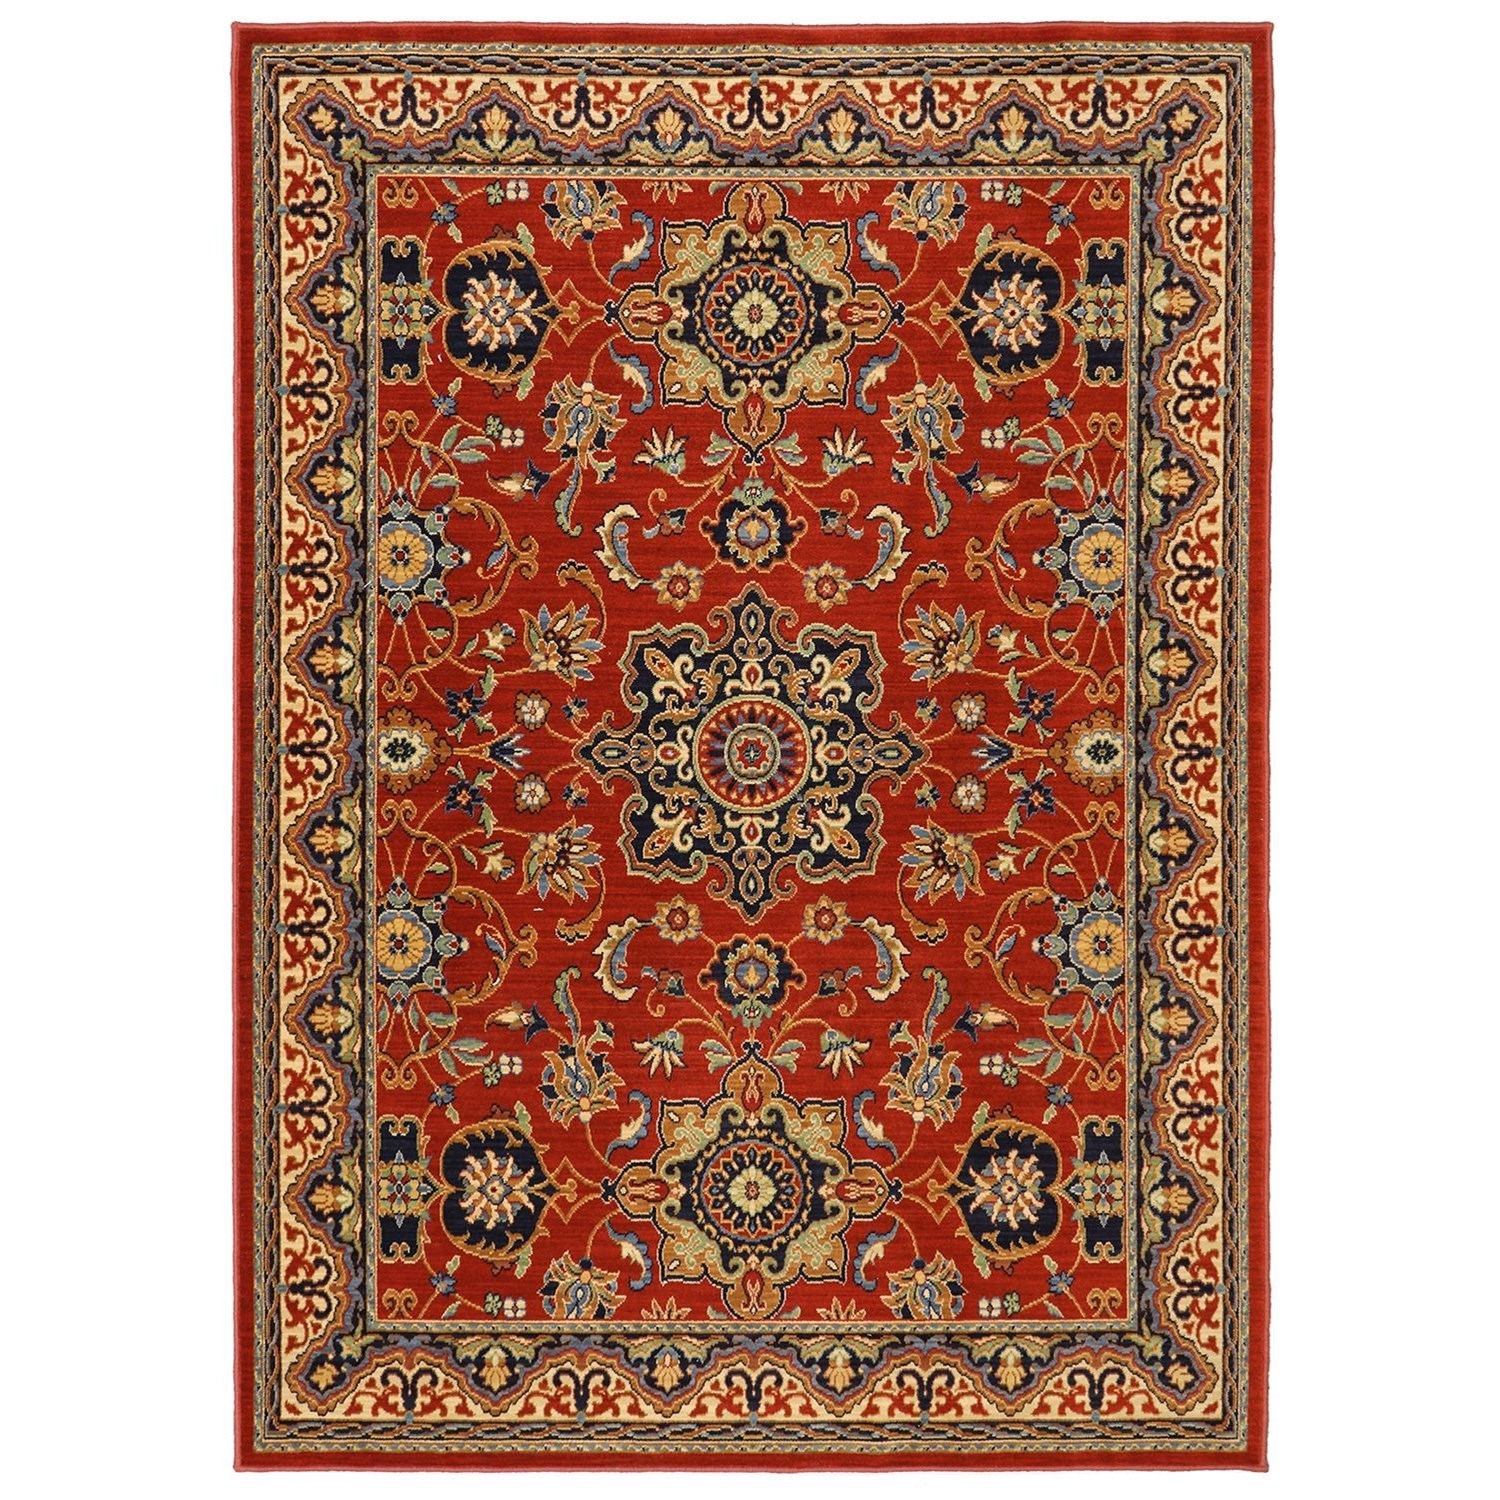 Karastan Rugs English Manor 9'2x13' Manchester Red Rug - Item Number: 02120 00601 110156